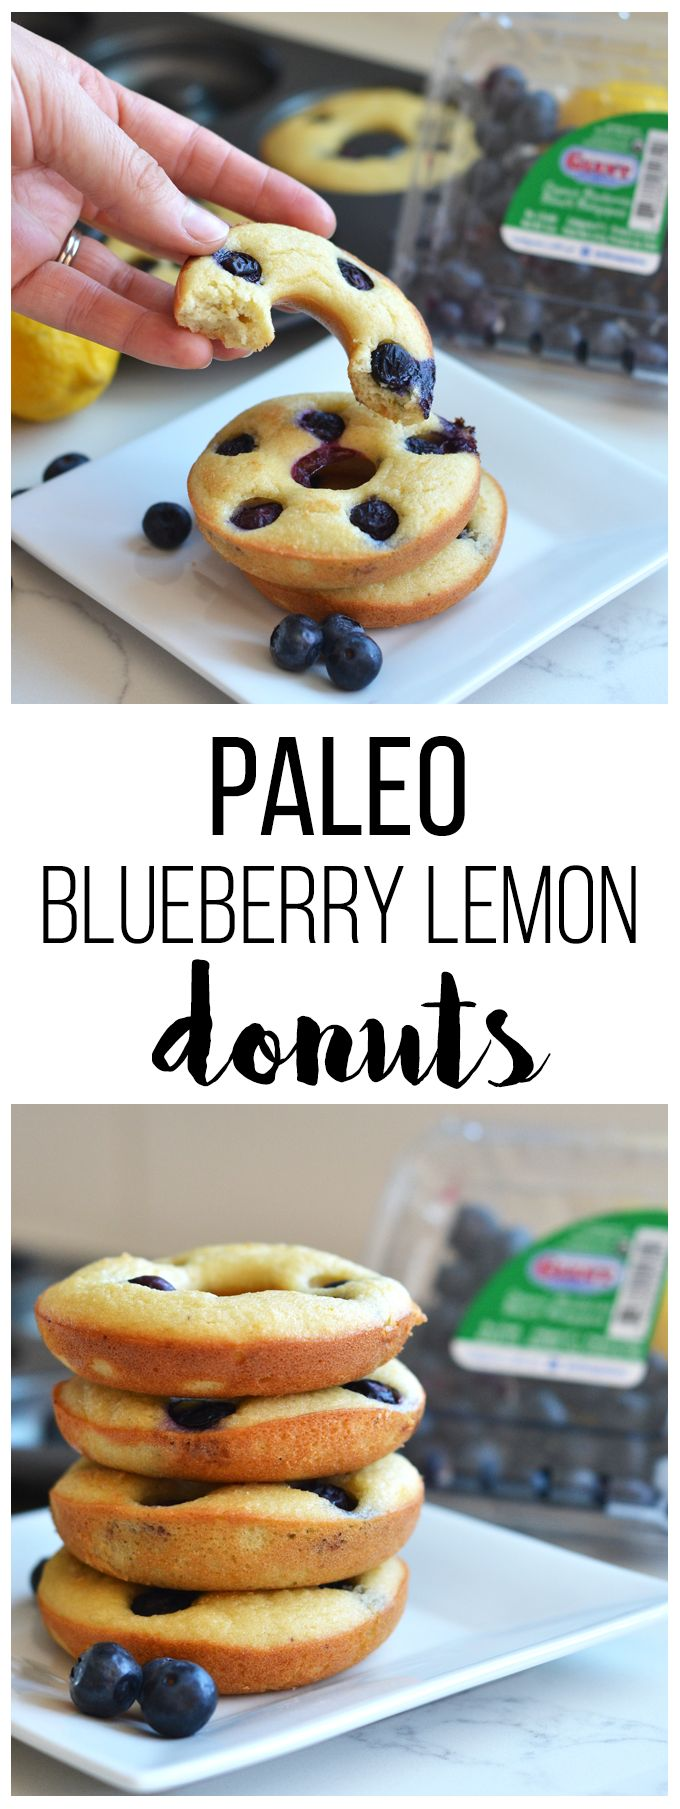 These Paleo Blueberry Lemon Donuts are the perfect grain free and refined sugar free way to enjoy your favorite treat!